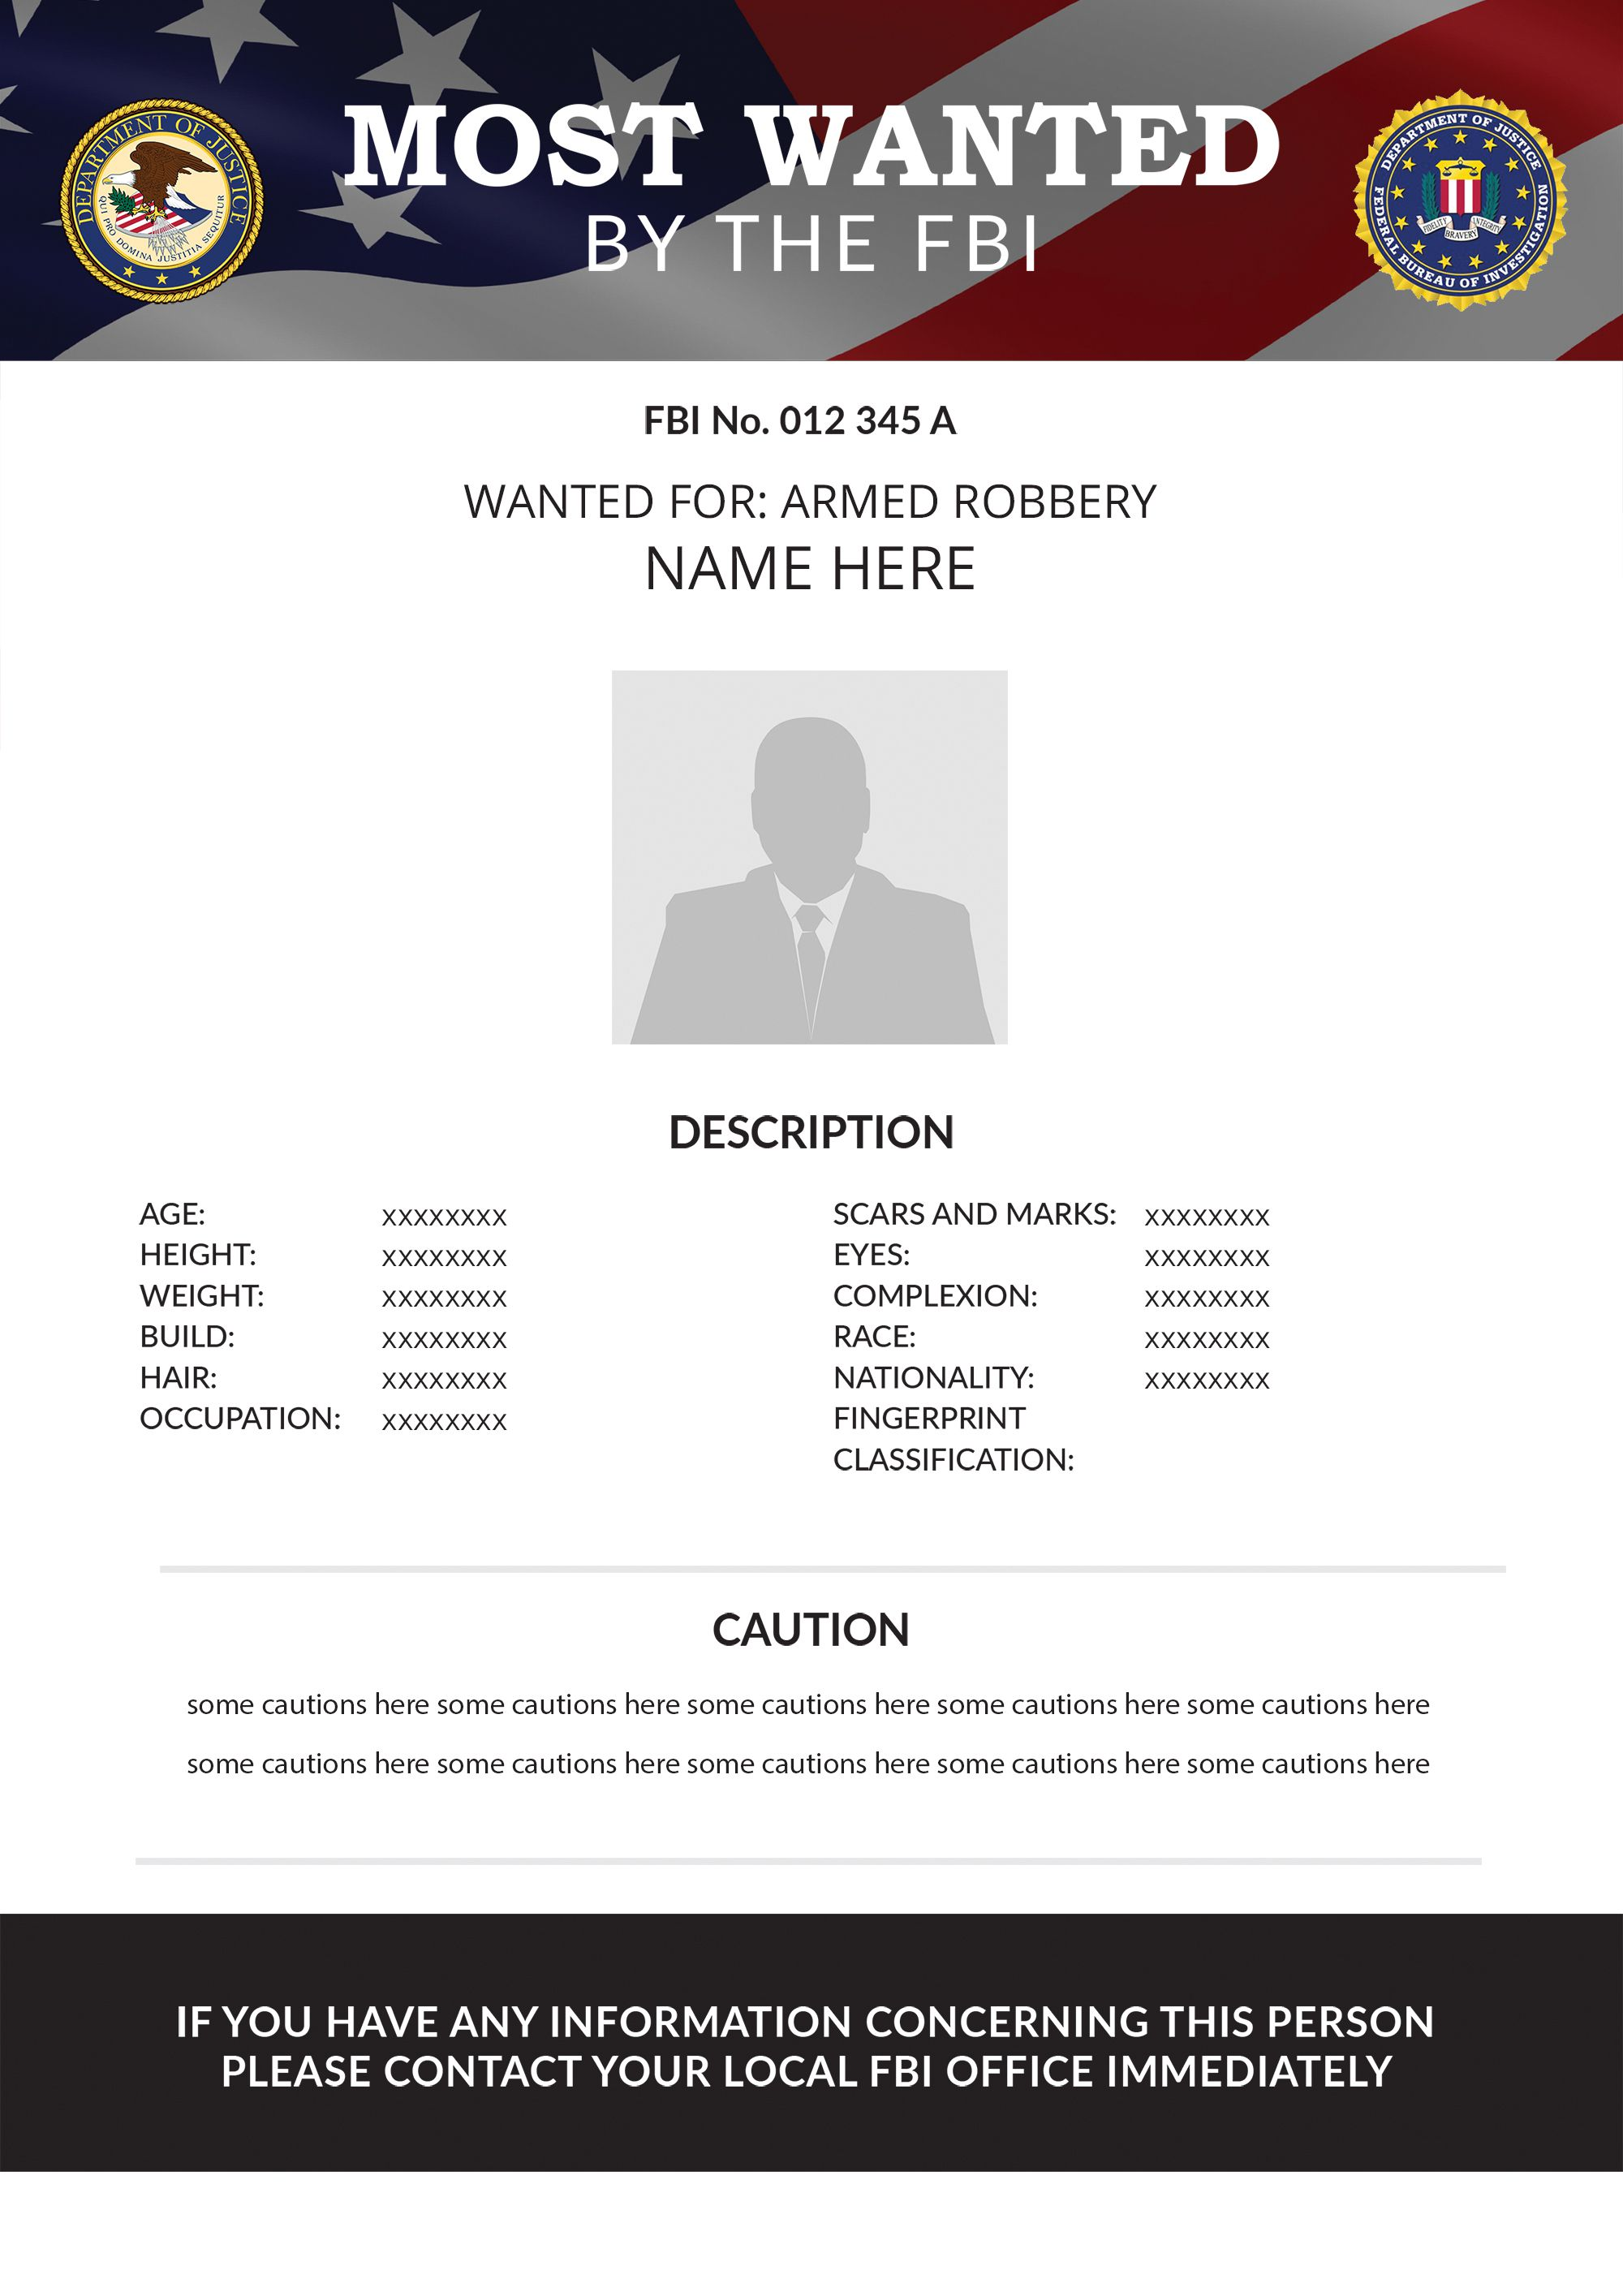 Free Wanted Poster Template 25 Customizable Design Templates